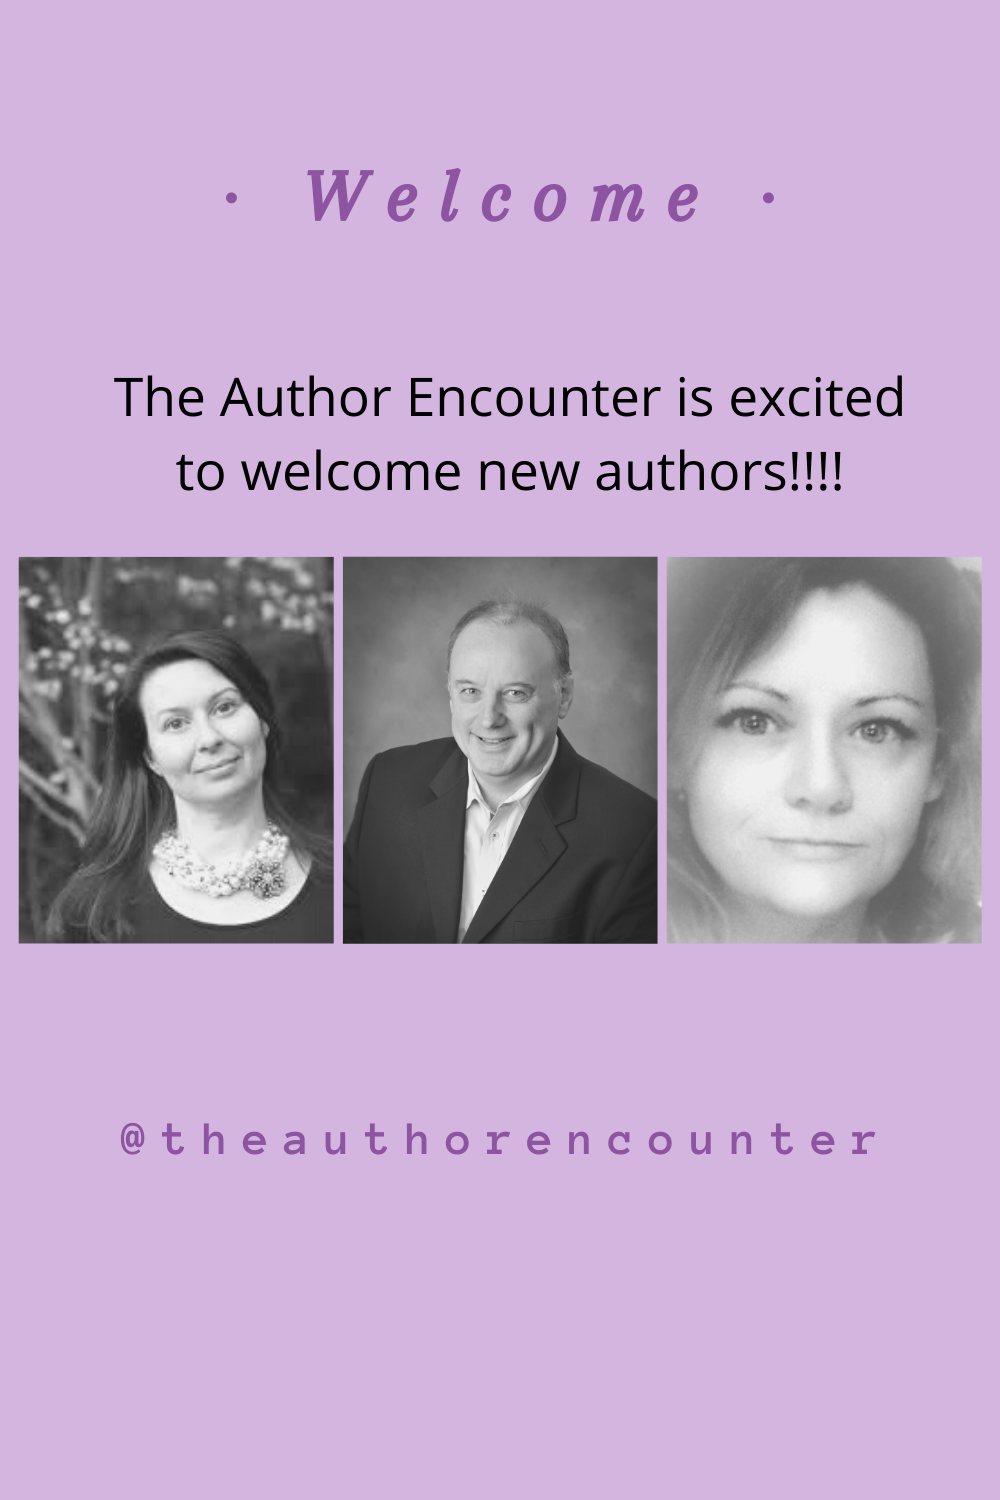 Pinterest image of new authors